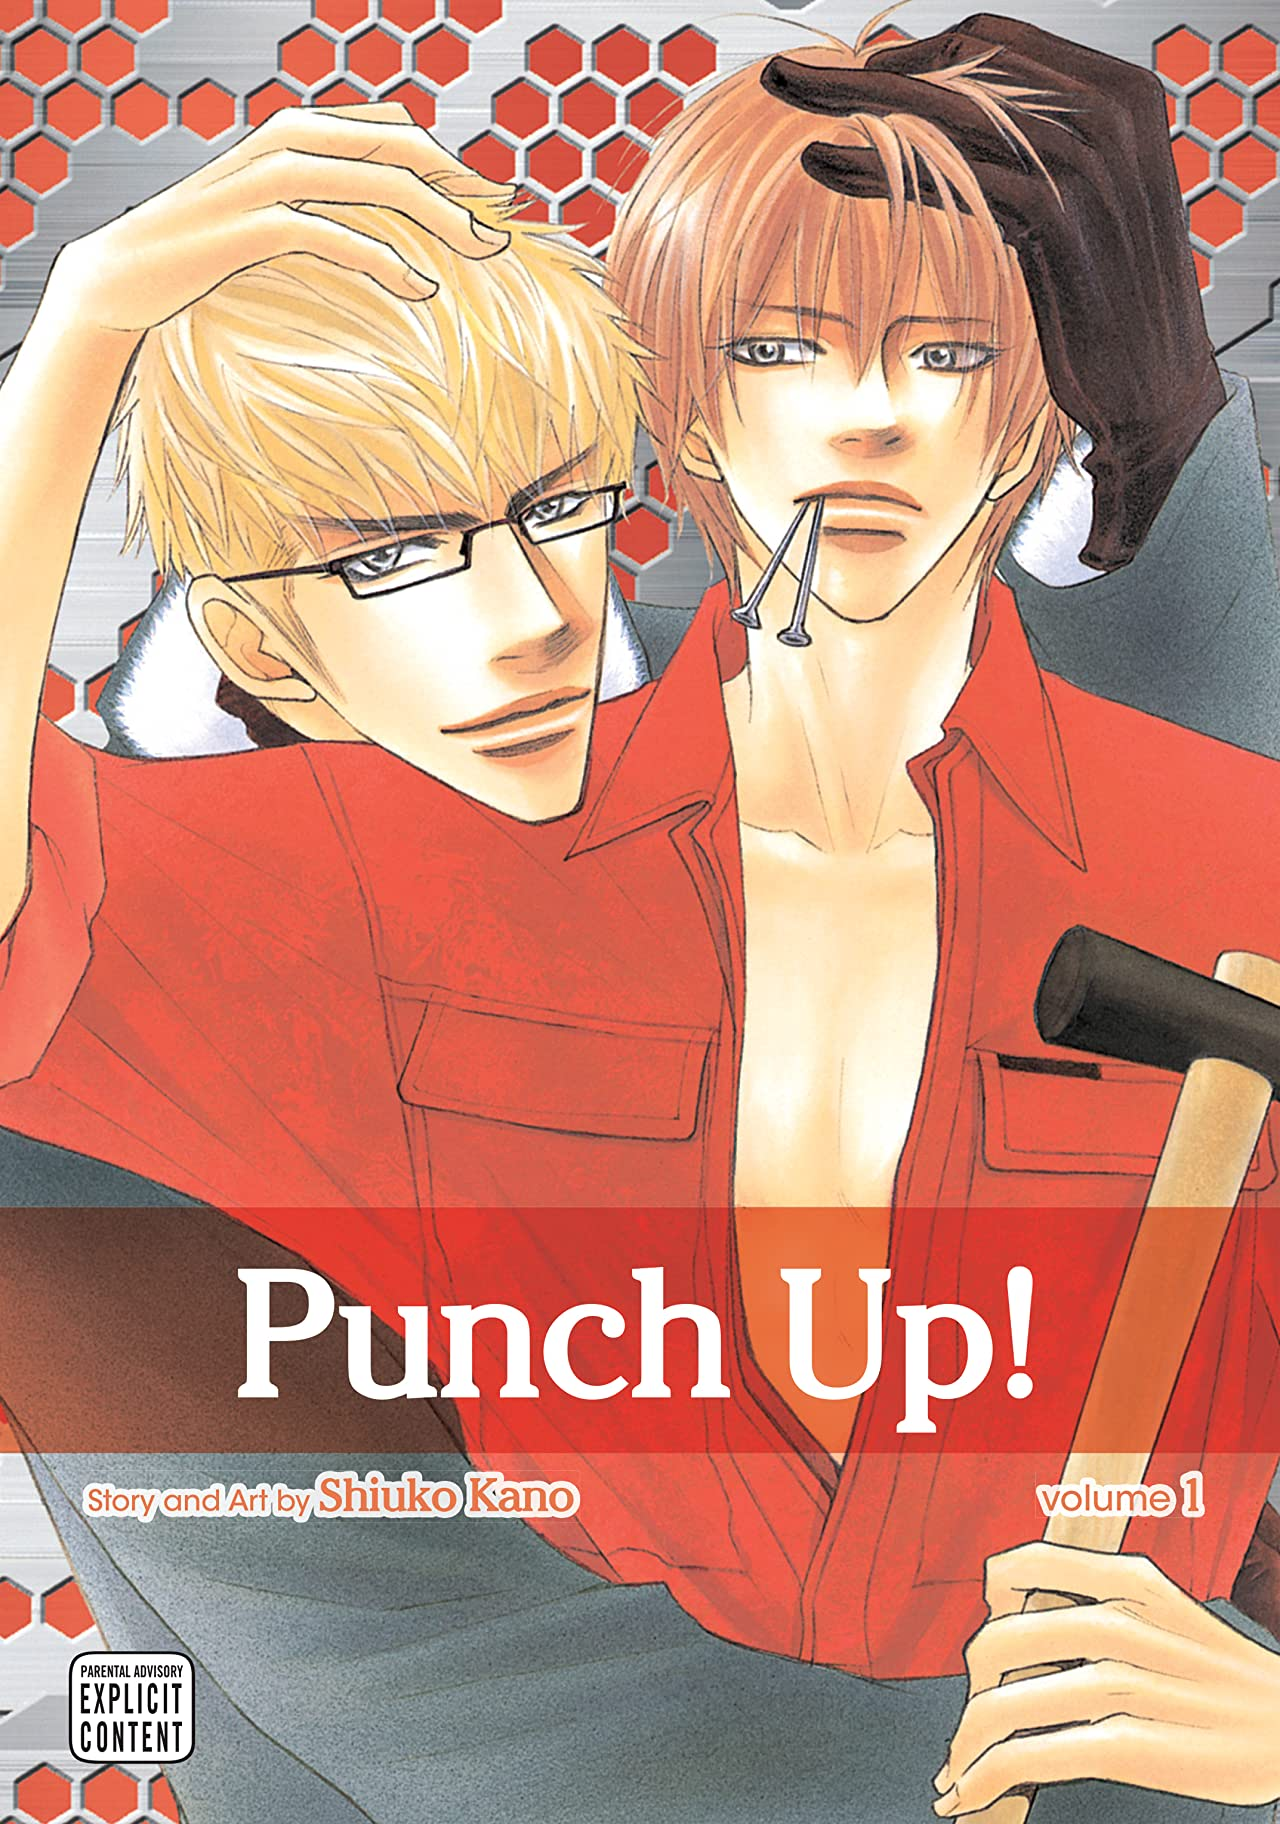 Punch Up! Vol. 1